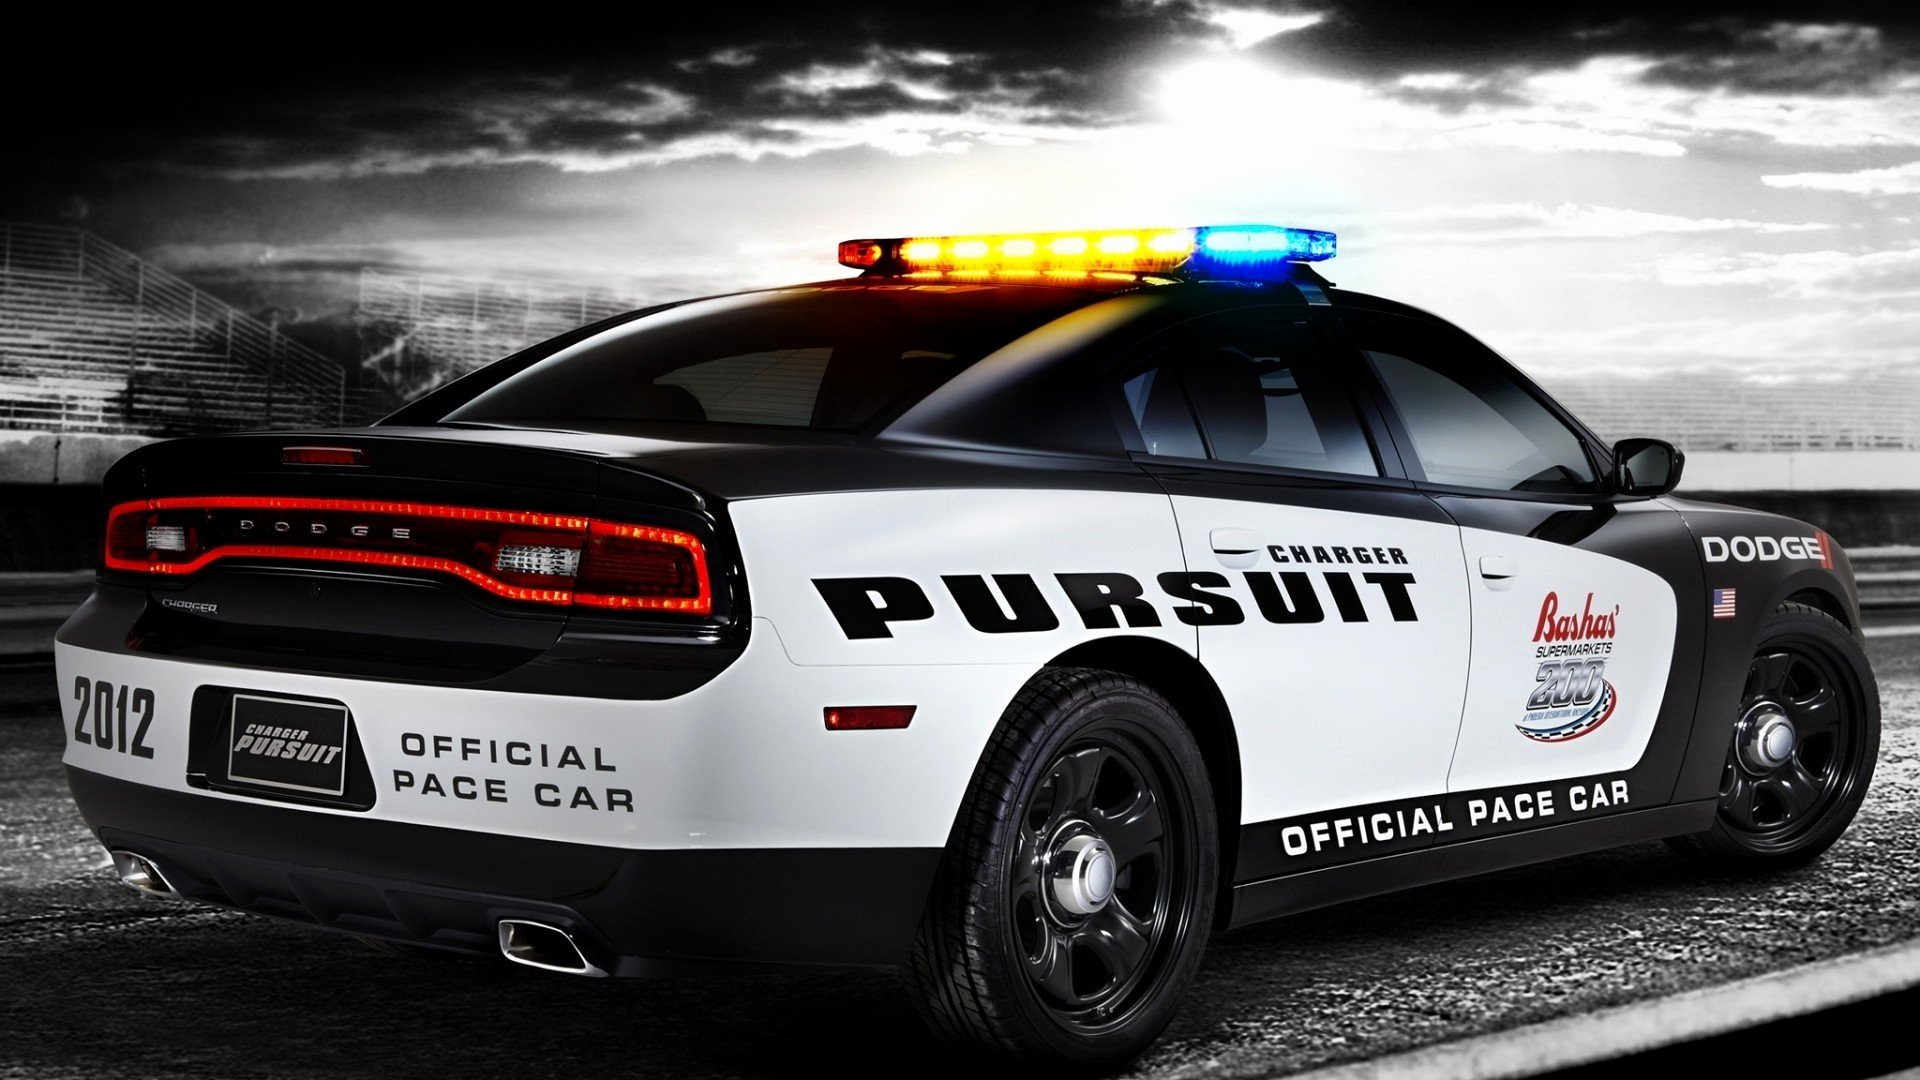 1920x1080 Police Cars Wallpapers Beautiful Car Wallpapers